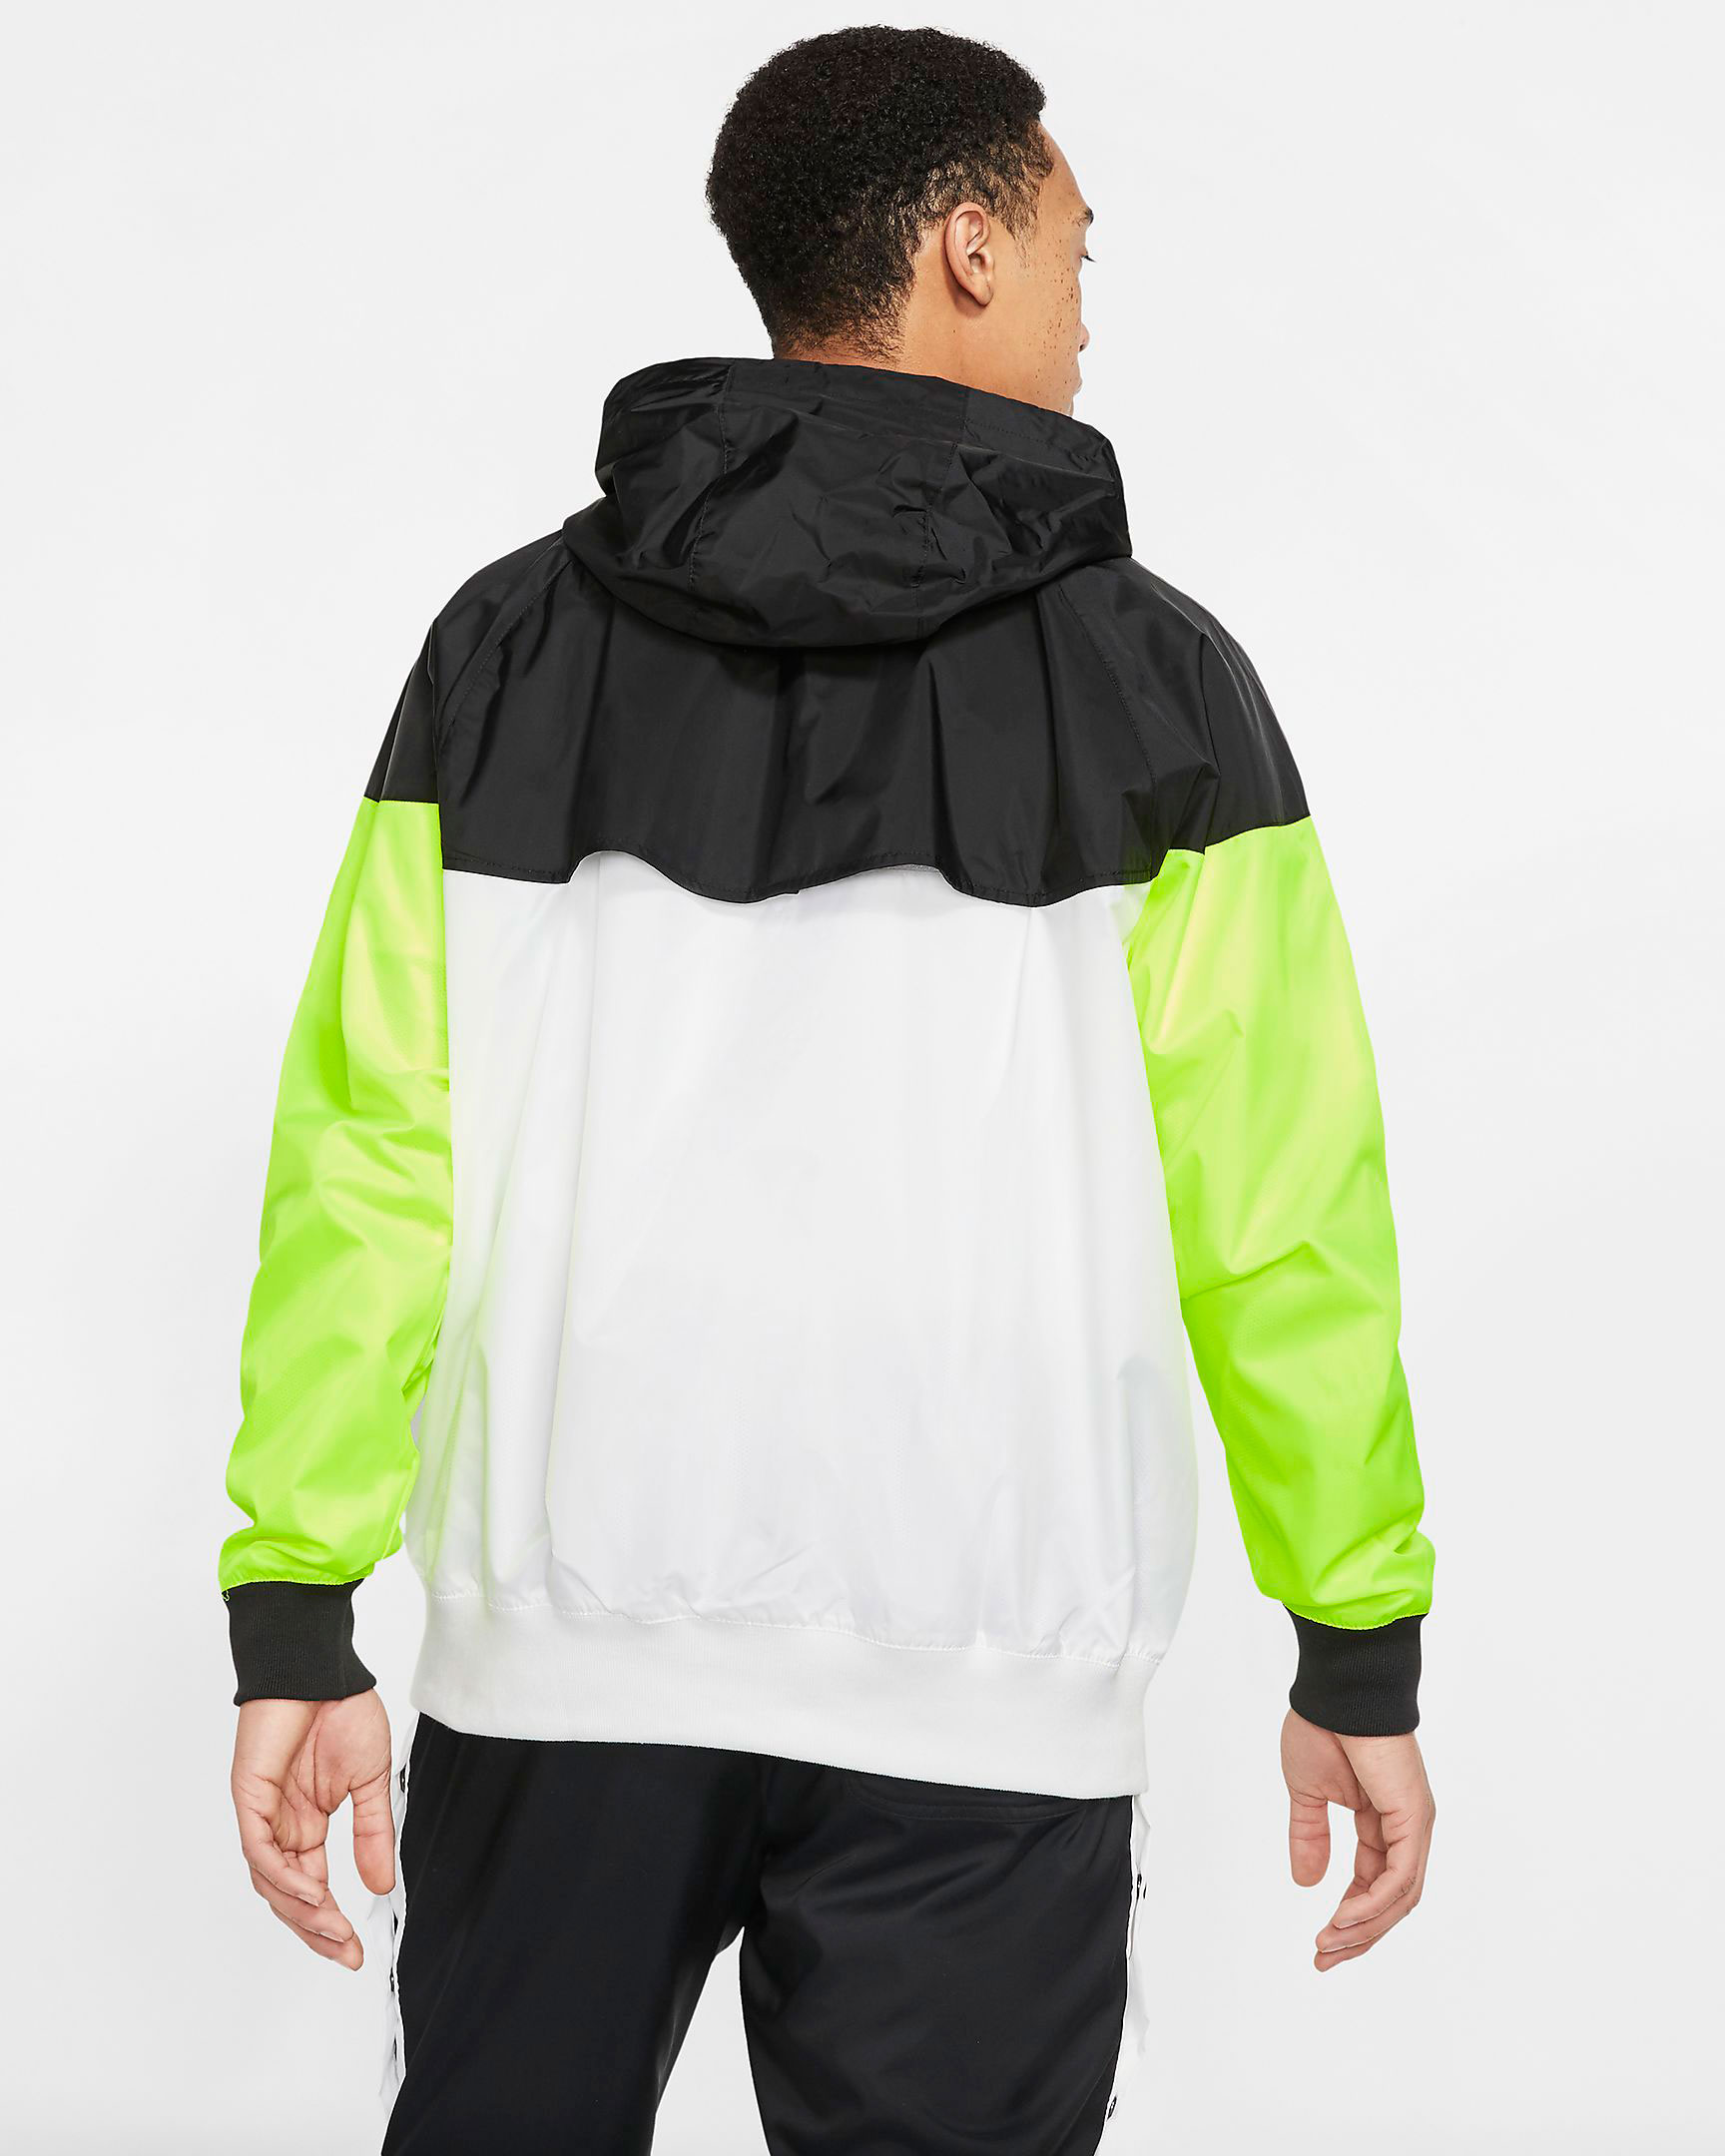 nike-air-max-90-og-volt-jacket-match-2